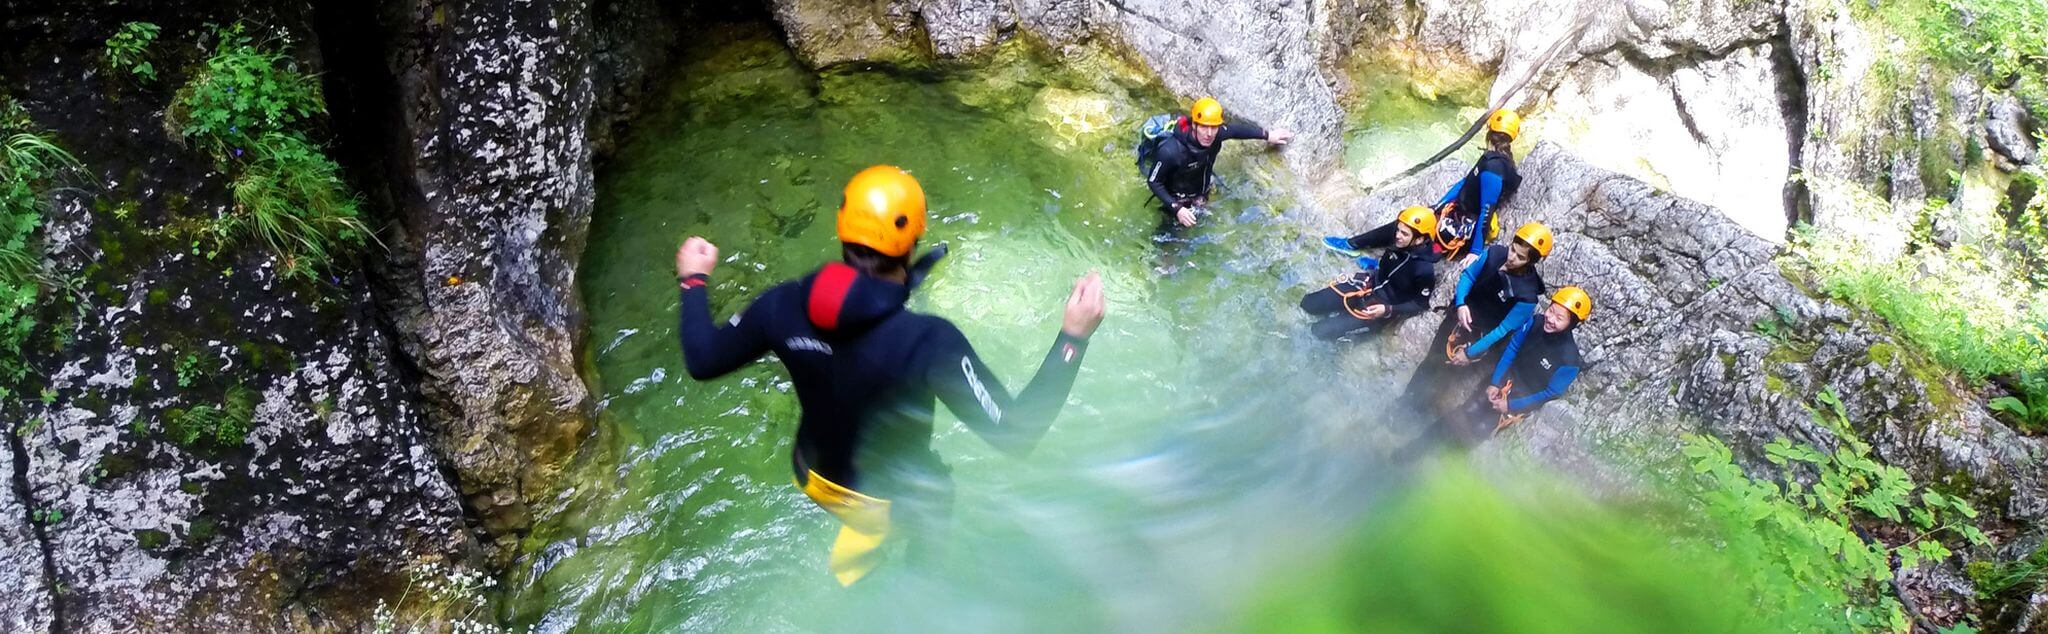 Canyoning in Montalban